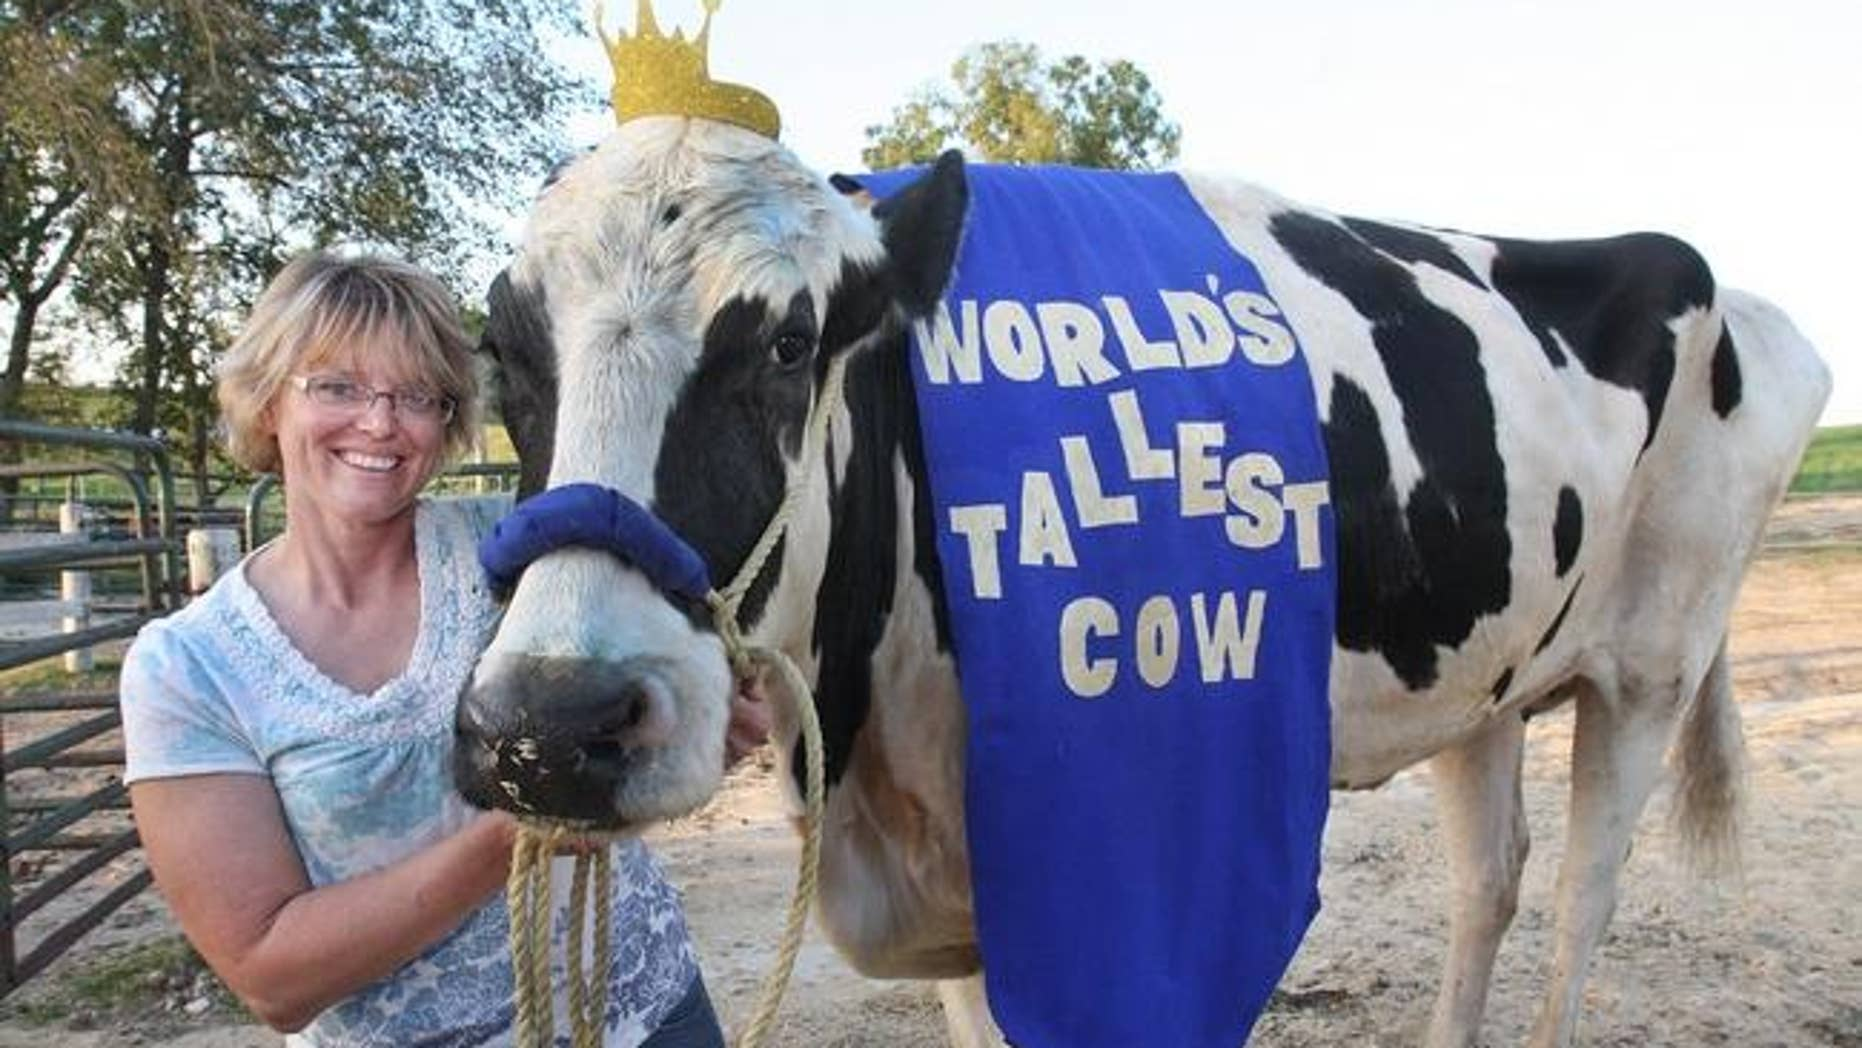 In this Sept. 19, 2014 photo, Patty Hanson poses with her prize-winning cow Blosom at her farm in Orangeville, Ill. Hanson says Blosom, the world's tallest cow has died after holding the title for less than a year.  Hanson says that her 6-foot-4 cow died May 26, 2015 on her farm. She is not sure what happened to Blosom, but she decided to put the 13-year-old Holstein down after two veterinarians said there was nothing they could do to save her.  (The Journal-Standard via AP) MANDATORY CREDIT